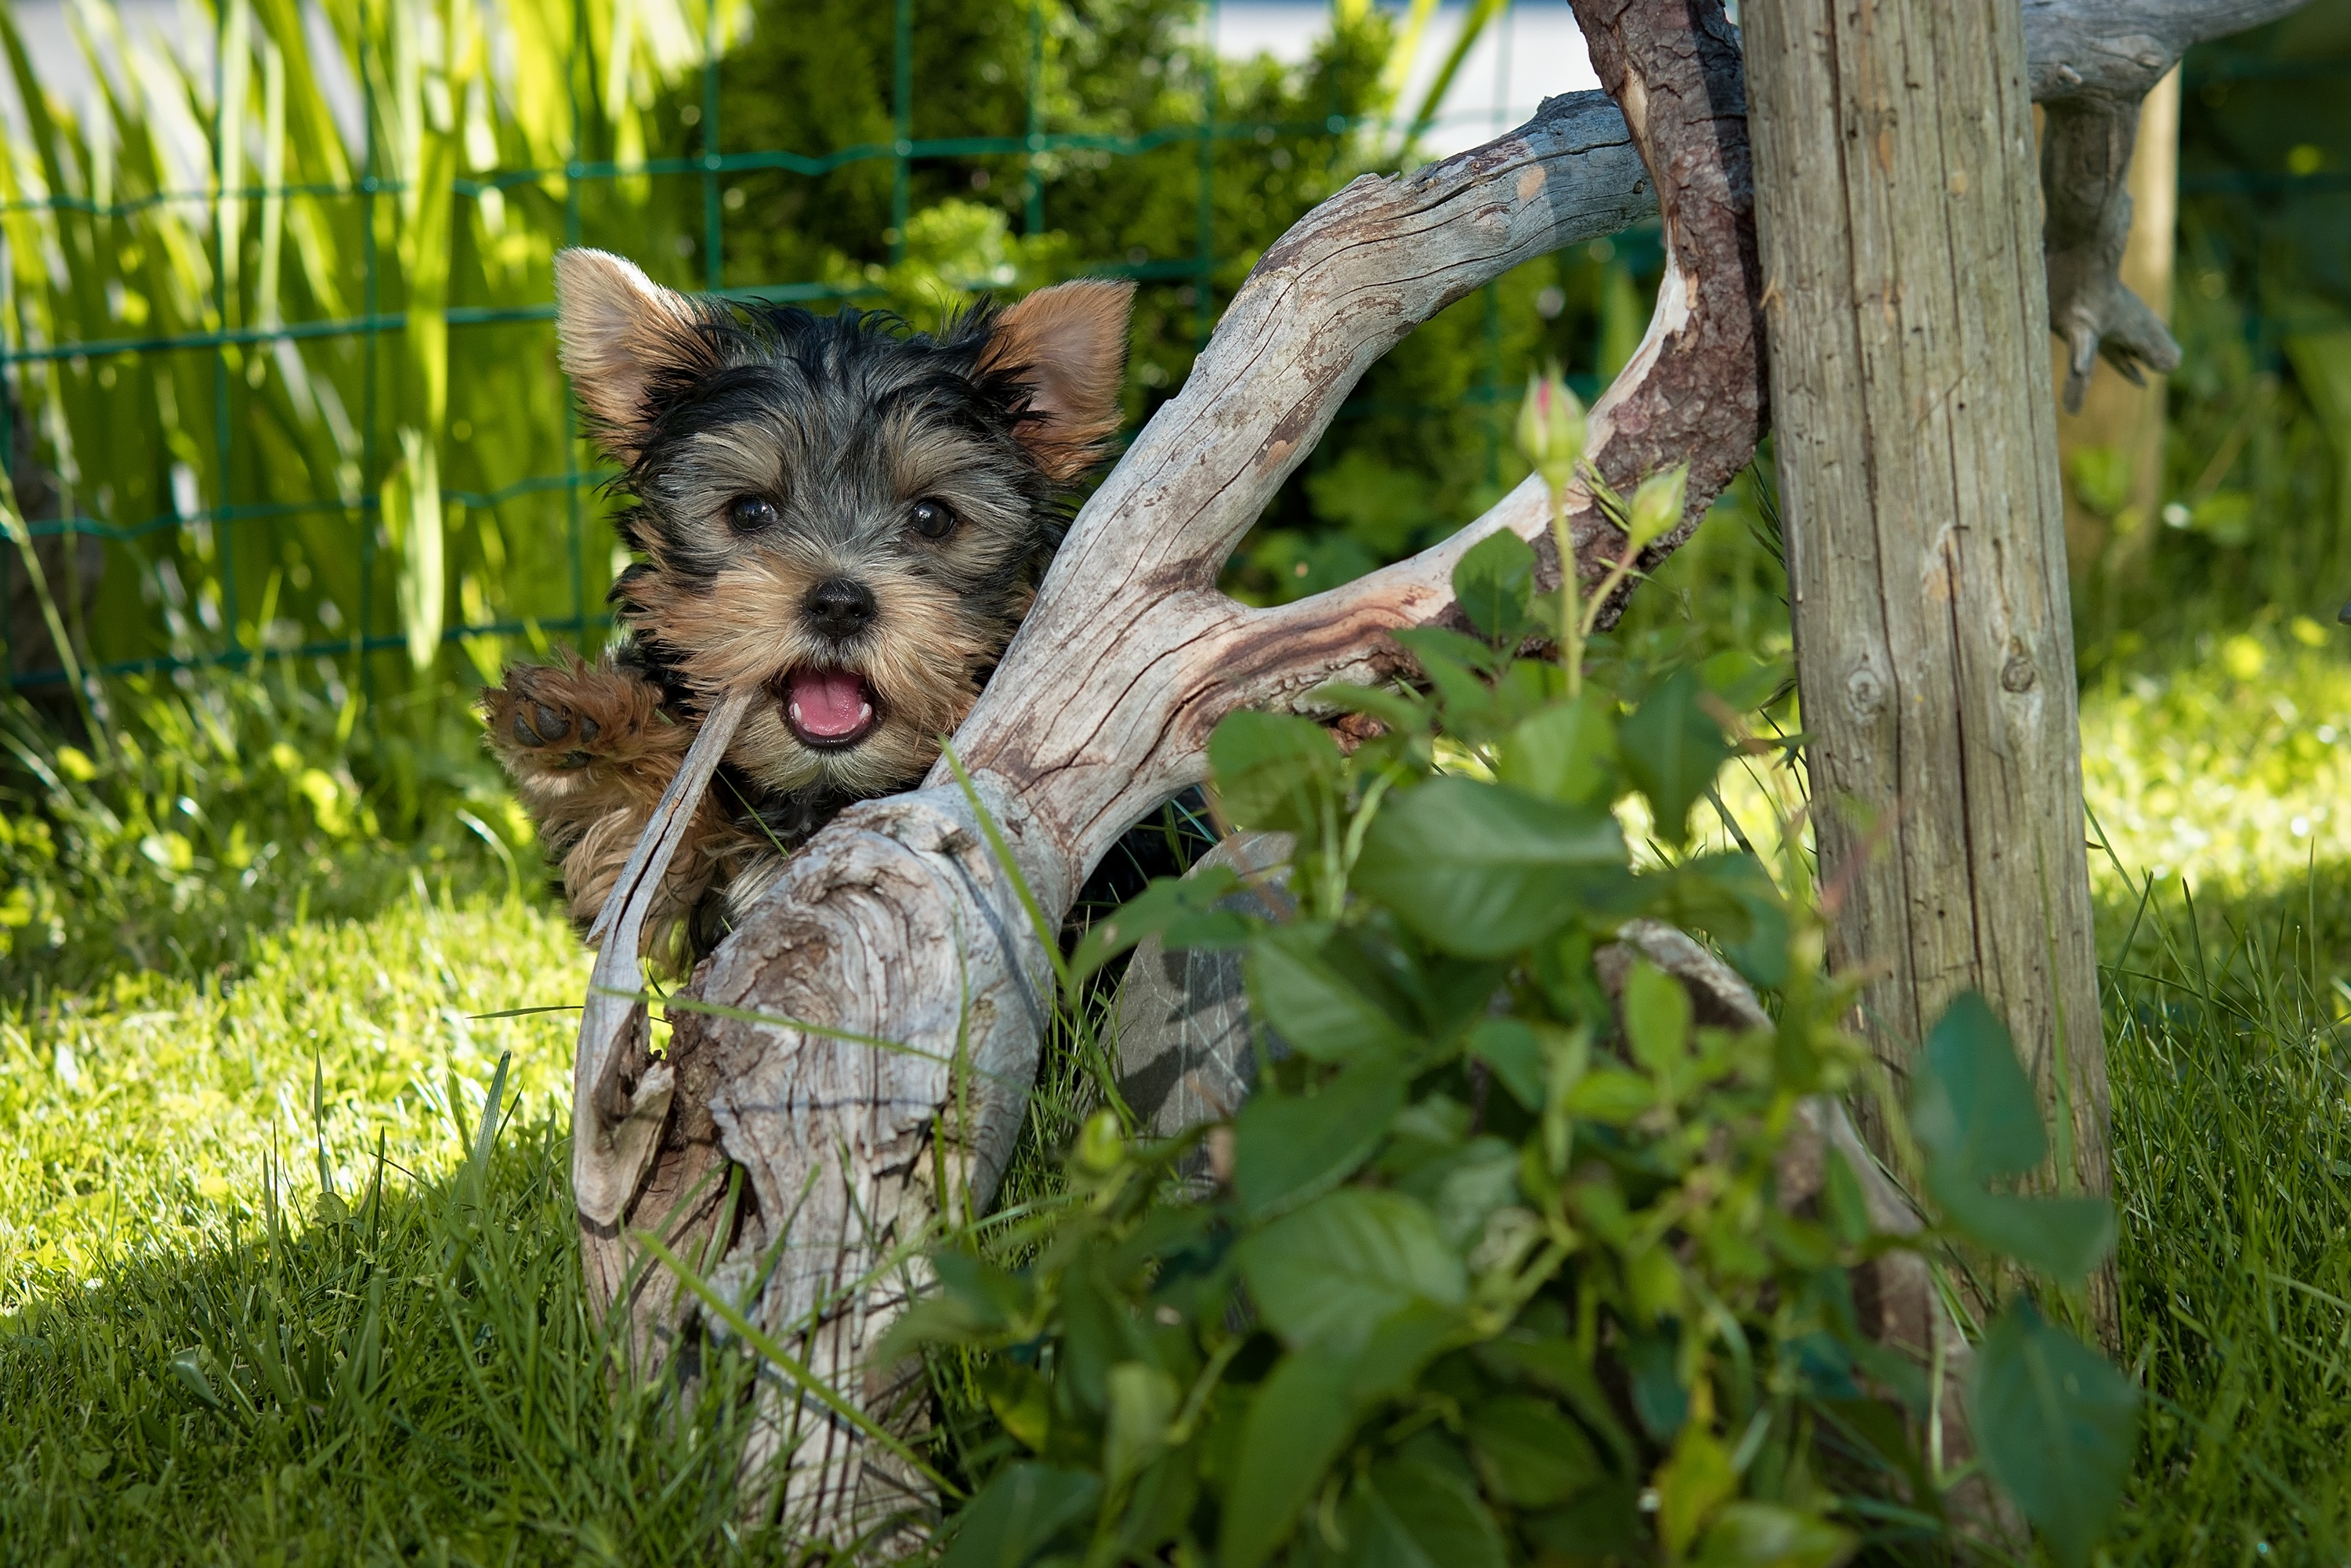 Cute Panda Wallpaper Download Yorkshire Terrier Puppy Hiding Behind Tree Root 183 Free